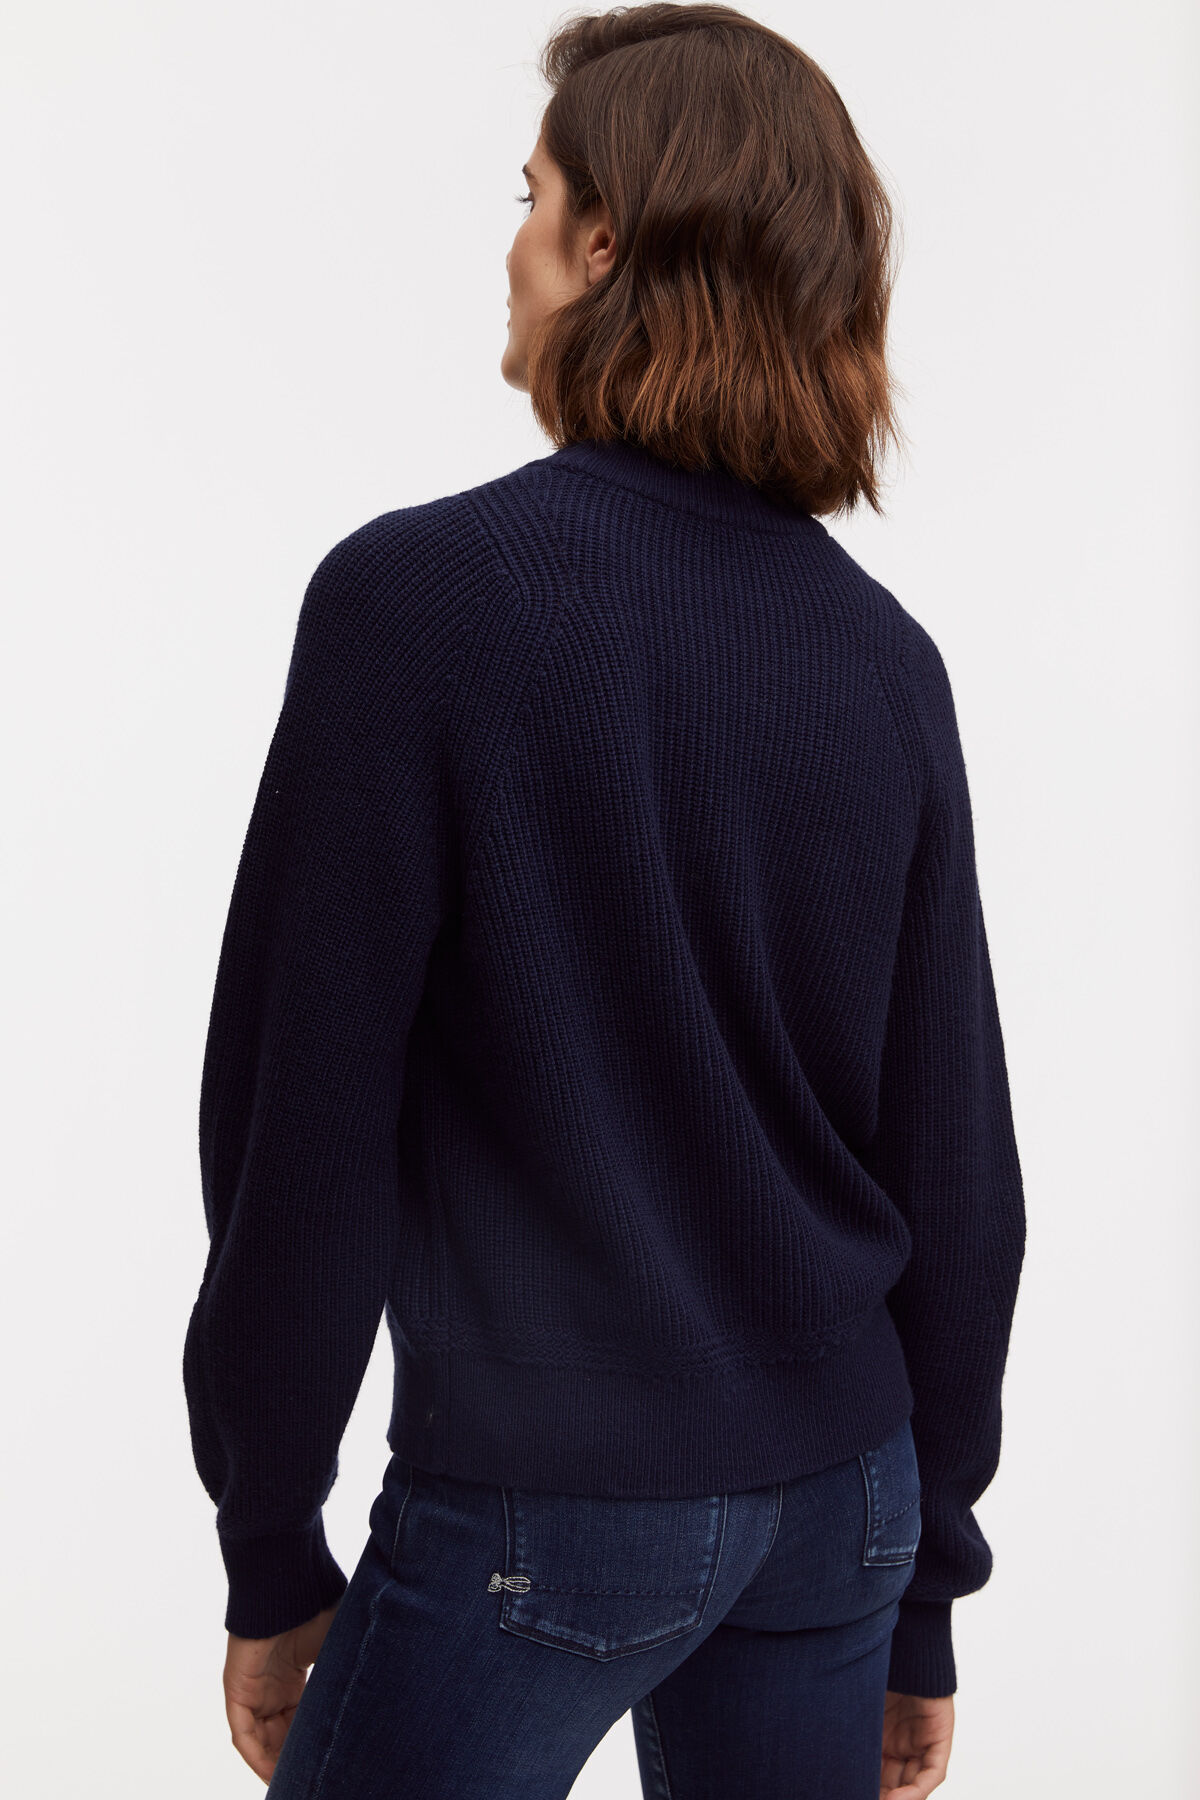 TRUDY JUMPER Premium Wool Blend - Oversized, Cropped Fit